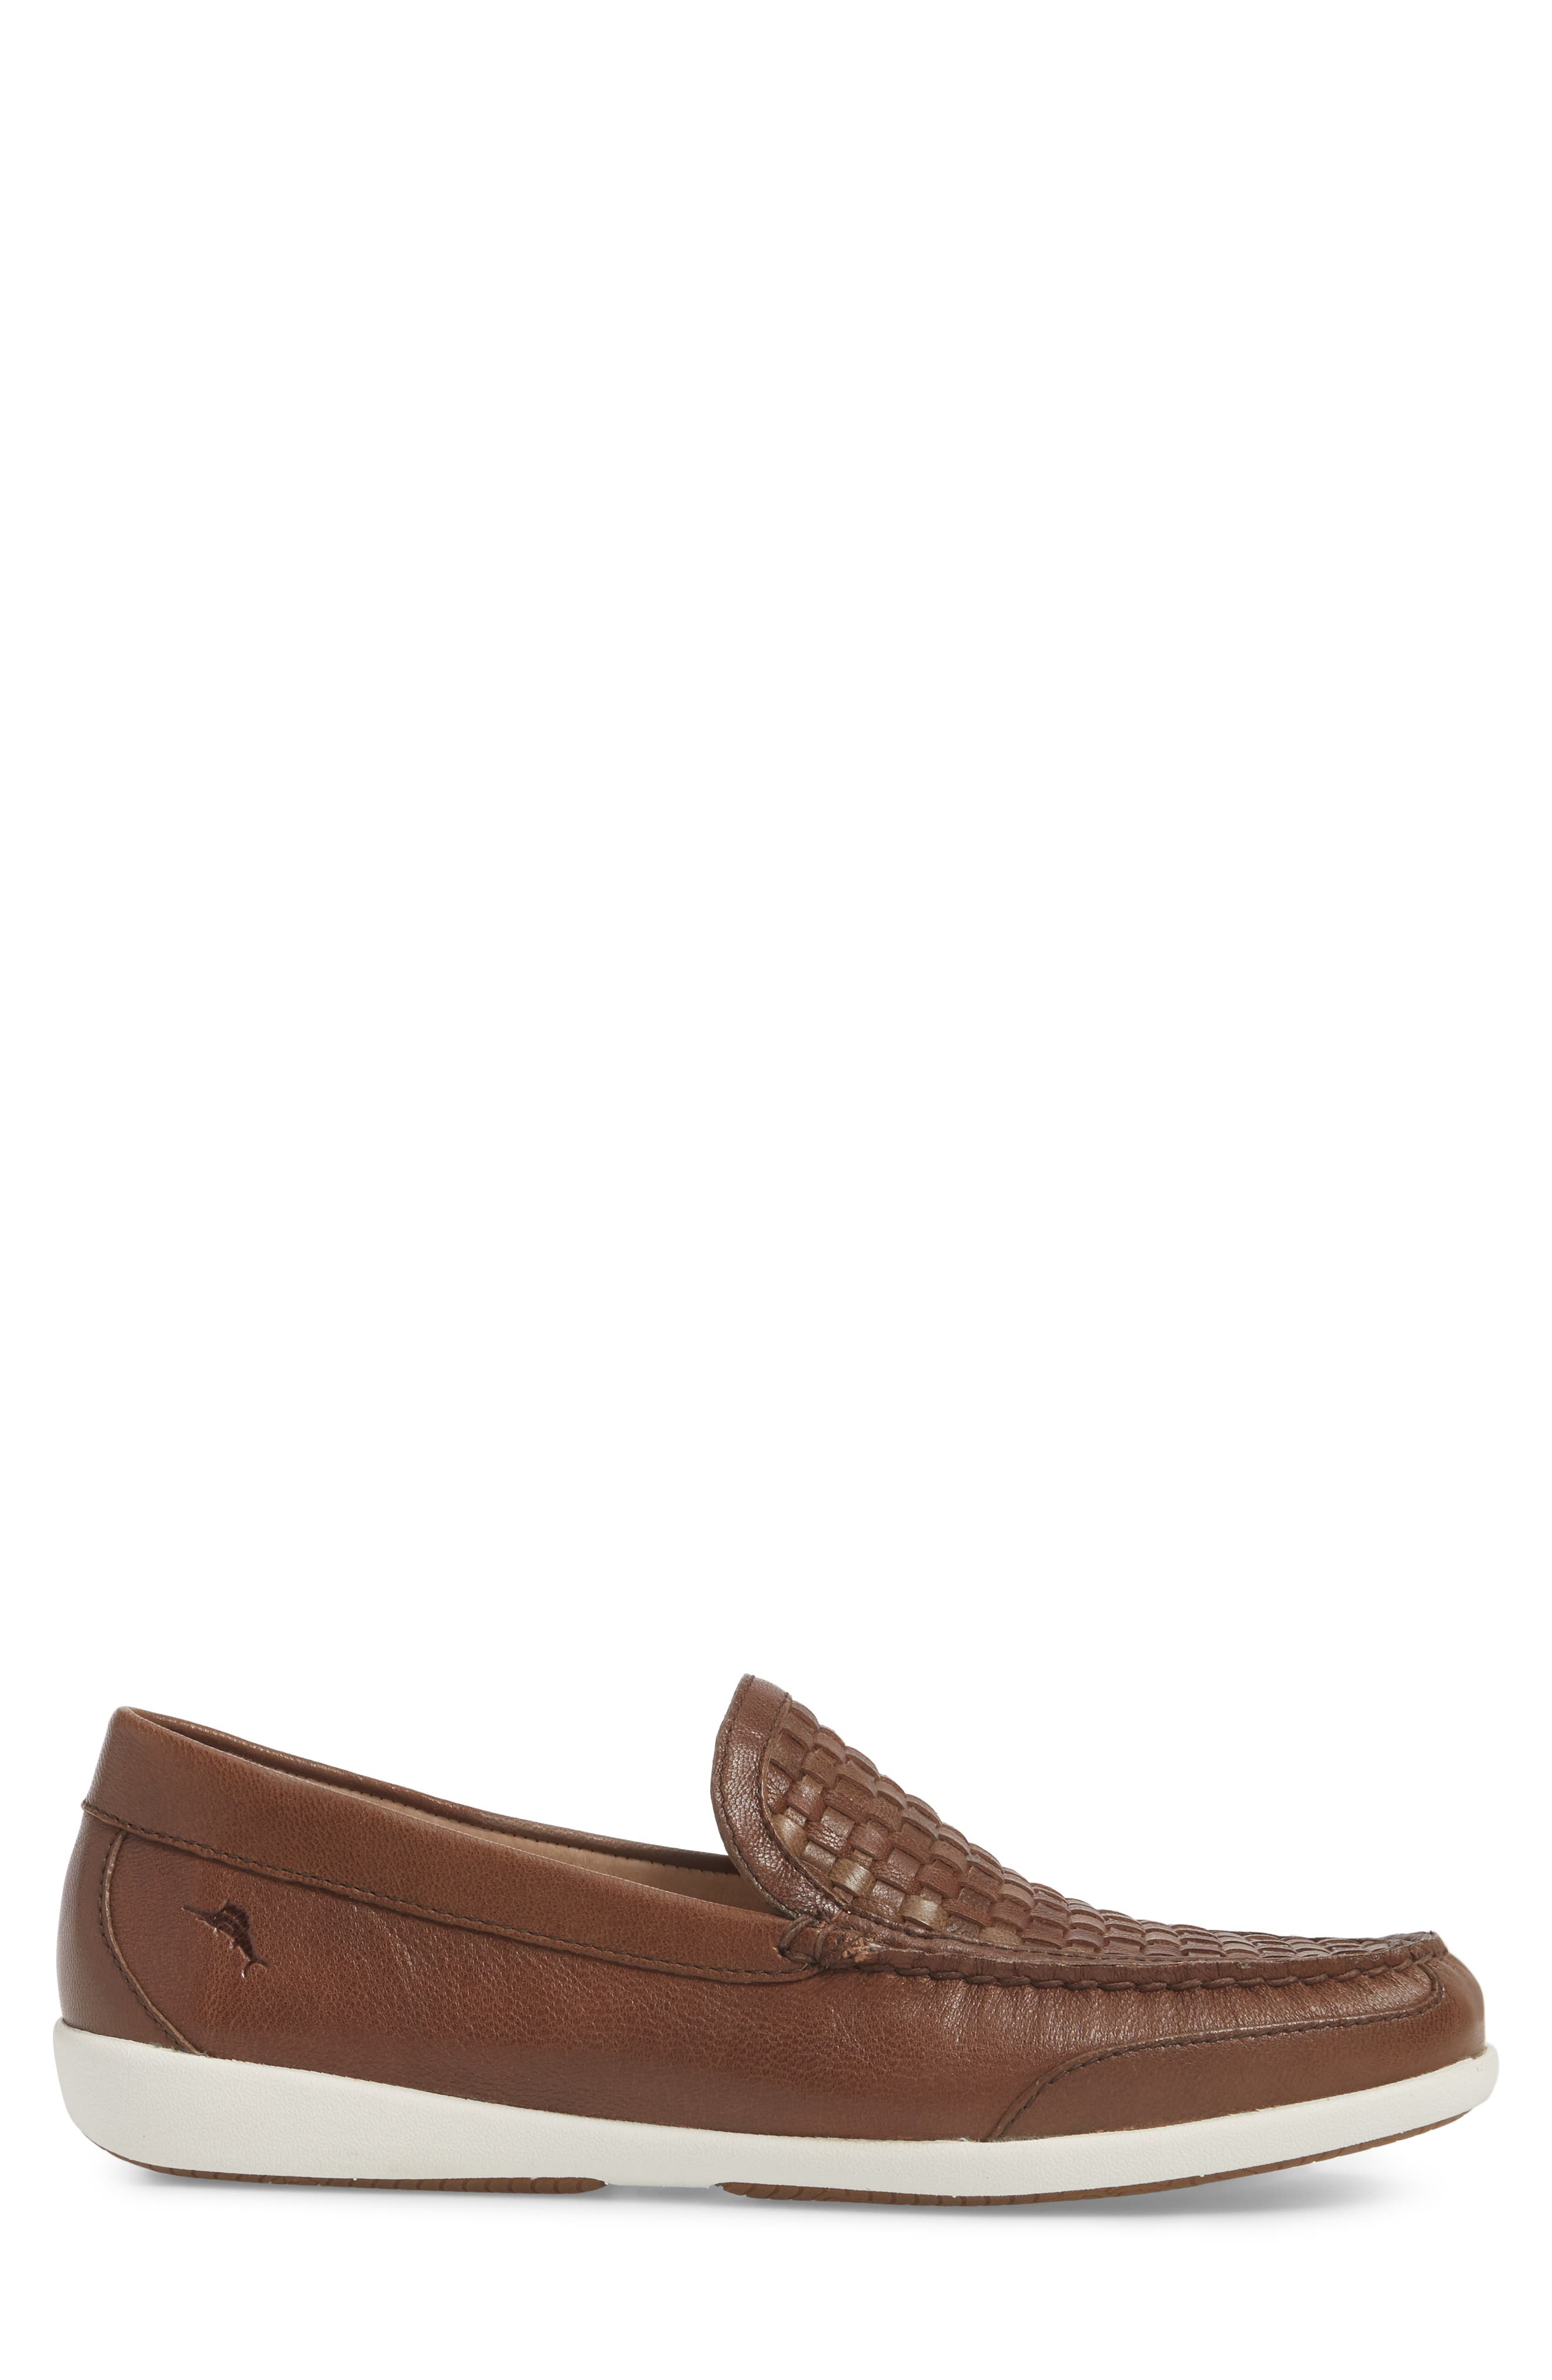 Taormina Woven Loafer,                             Alternate thumbnail 3, color,                             DARK BROWN LEATHER